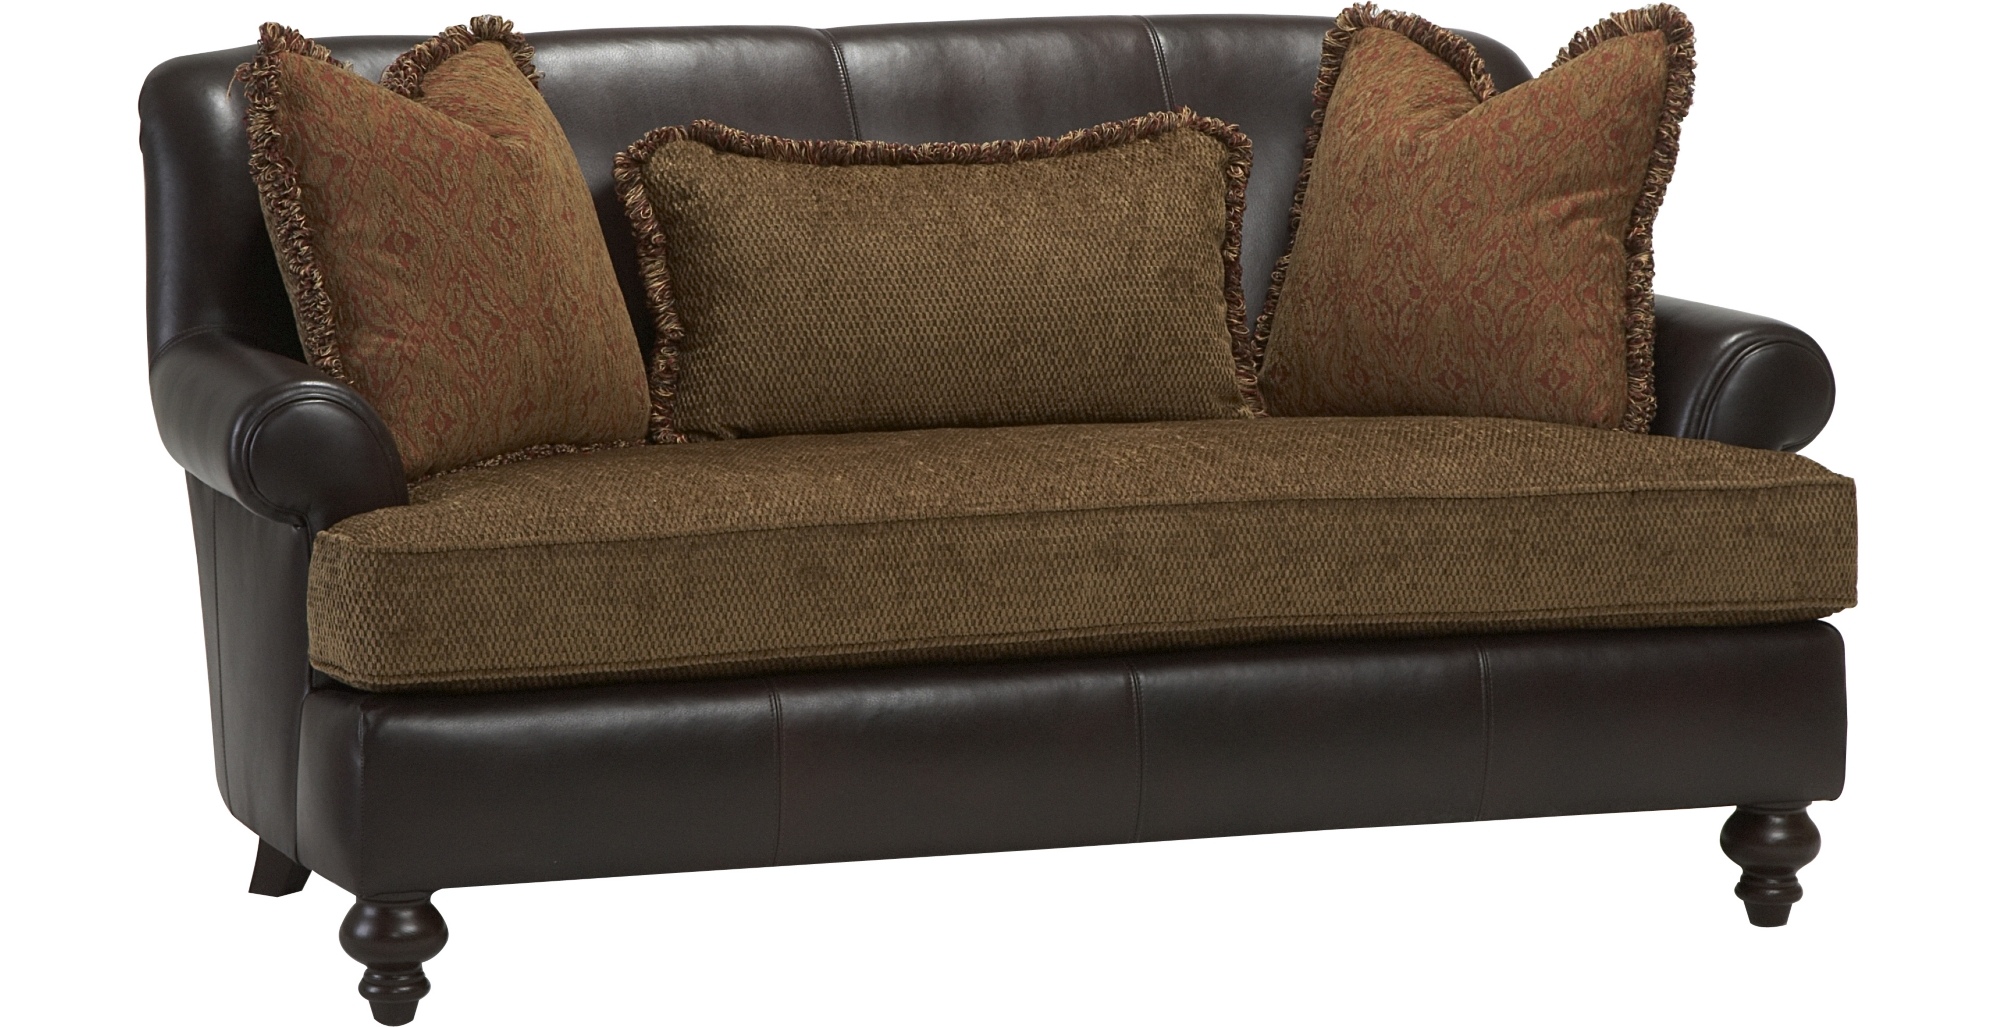 Bernhardt Sofa Leather And Fabric 100 Gray Velvet Tufted